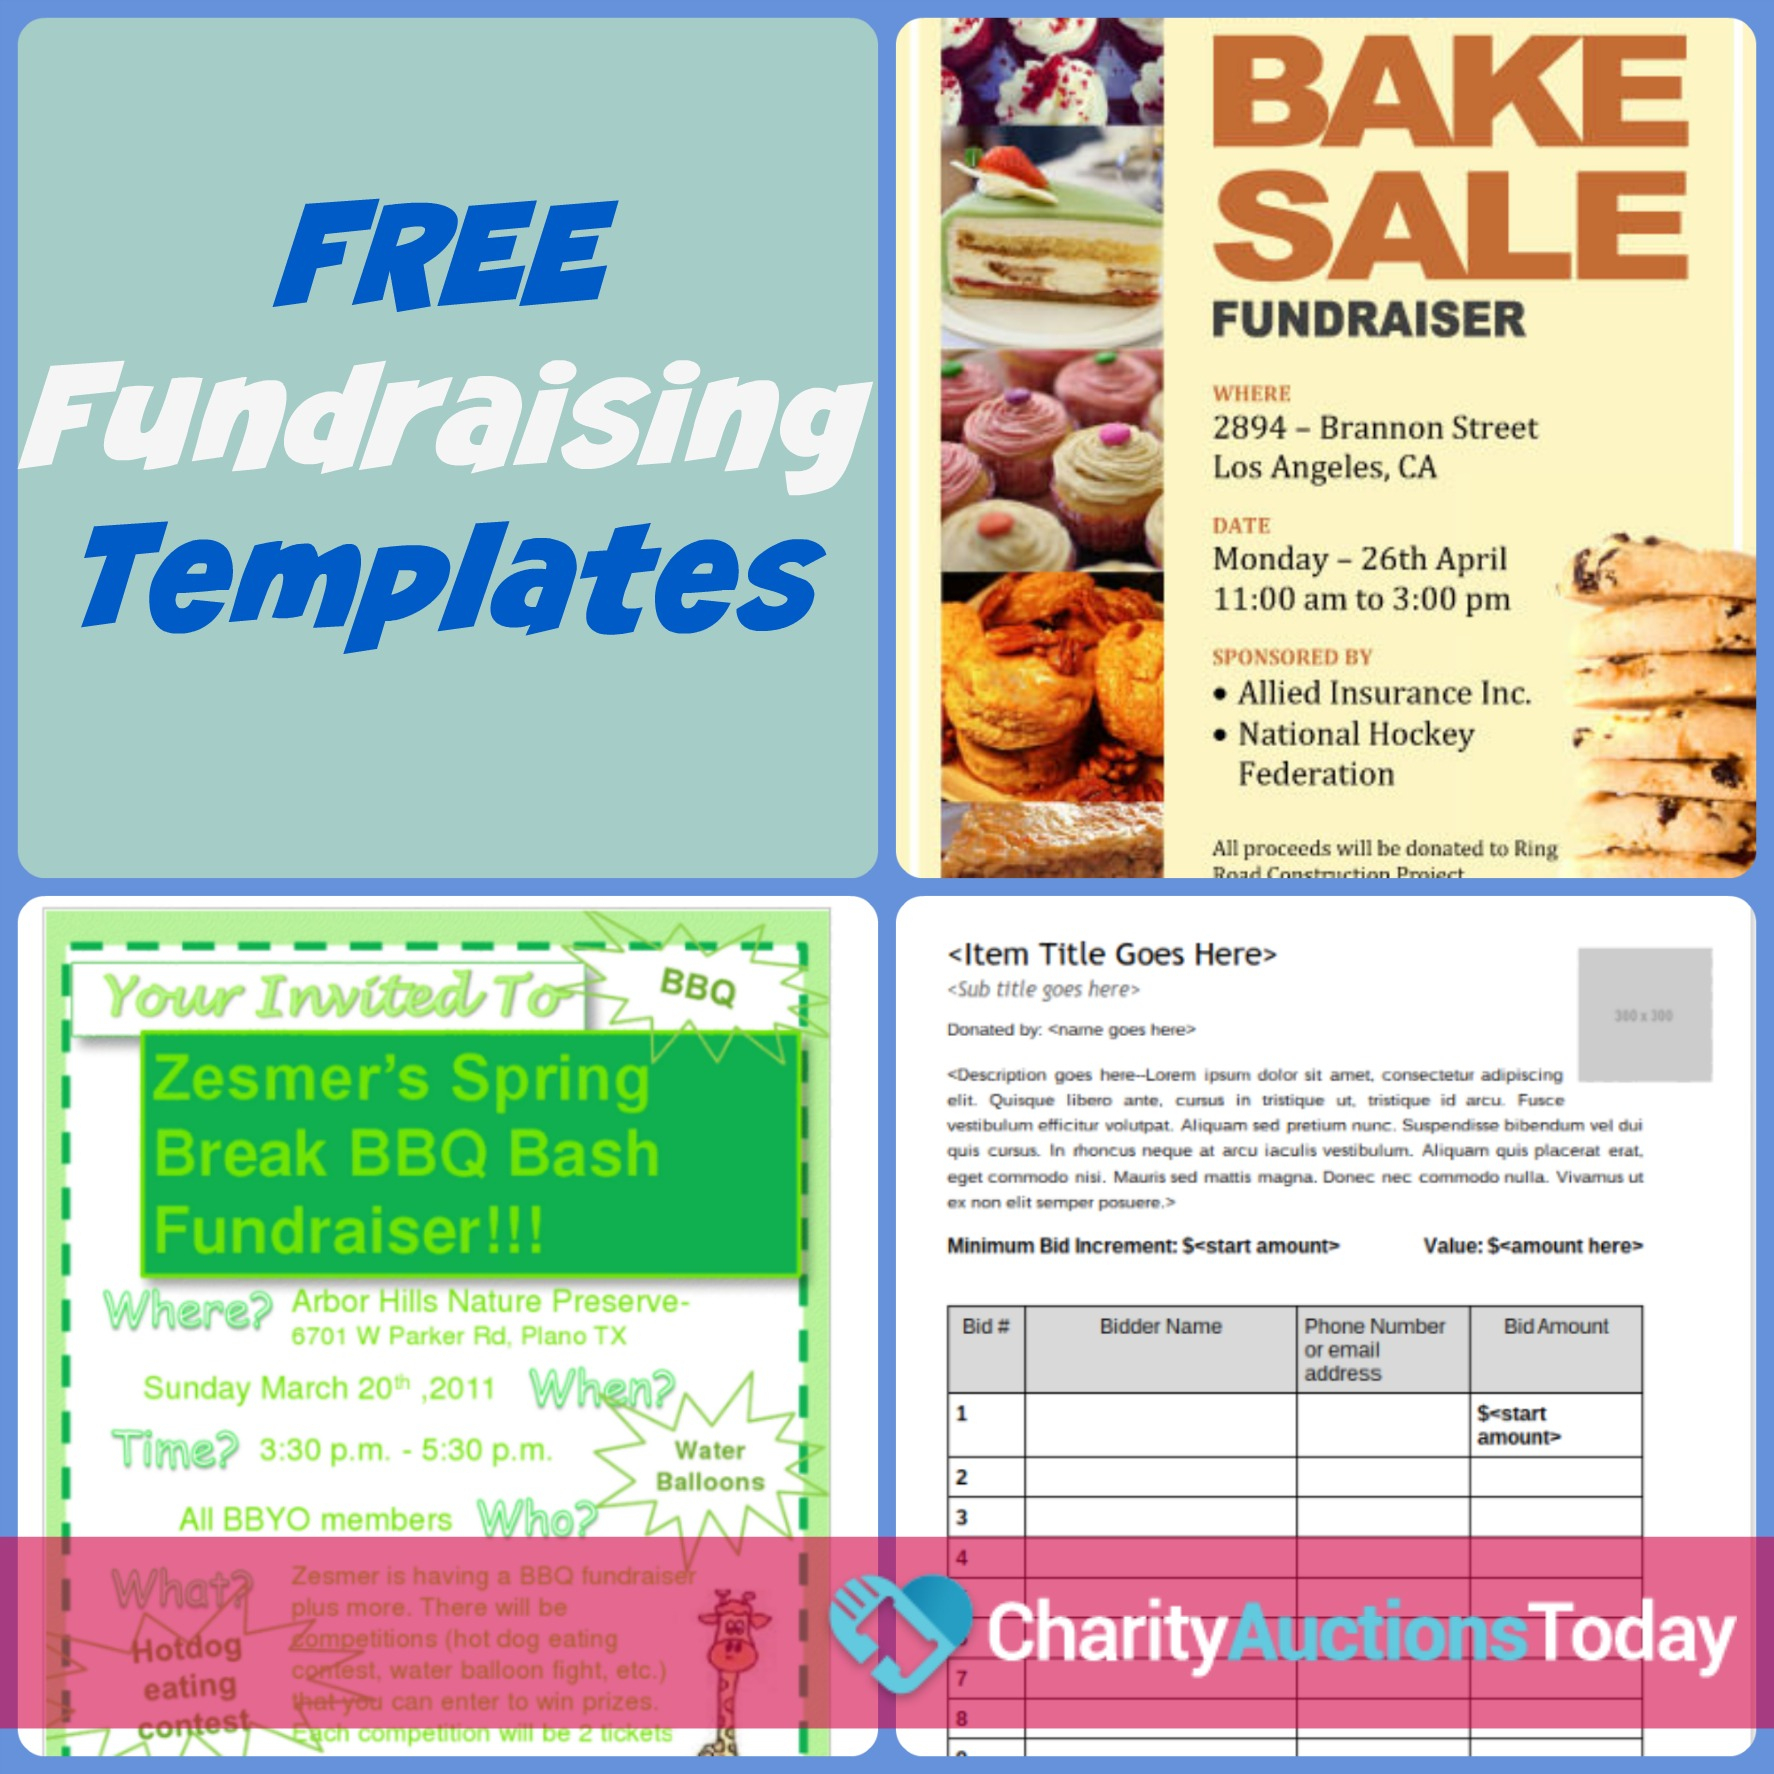 Free Fundraiser Flyer | Charity Auctions Today - Create Your Own Free Printable Flyers